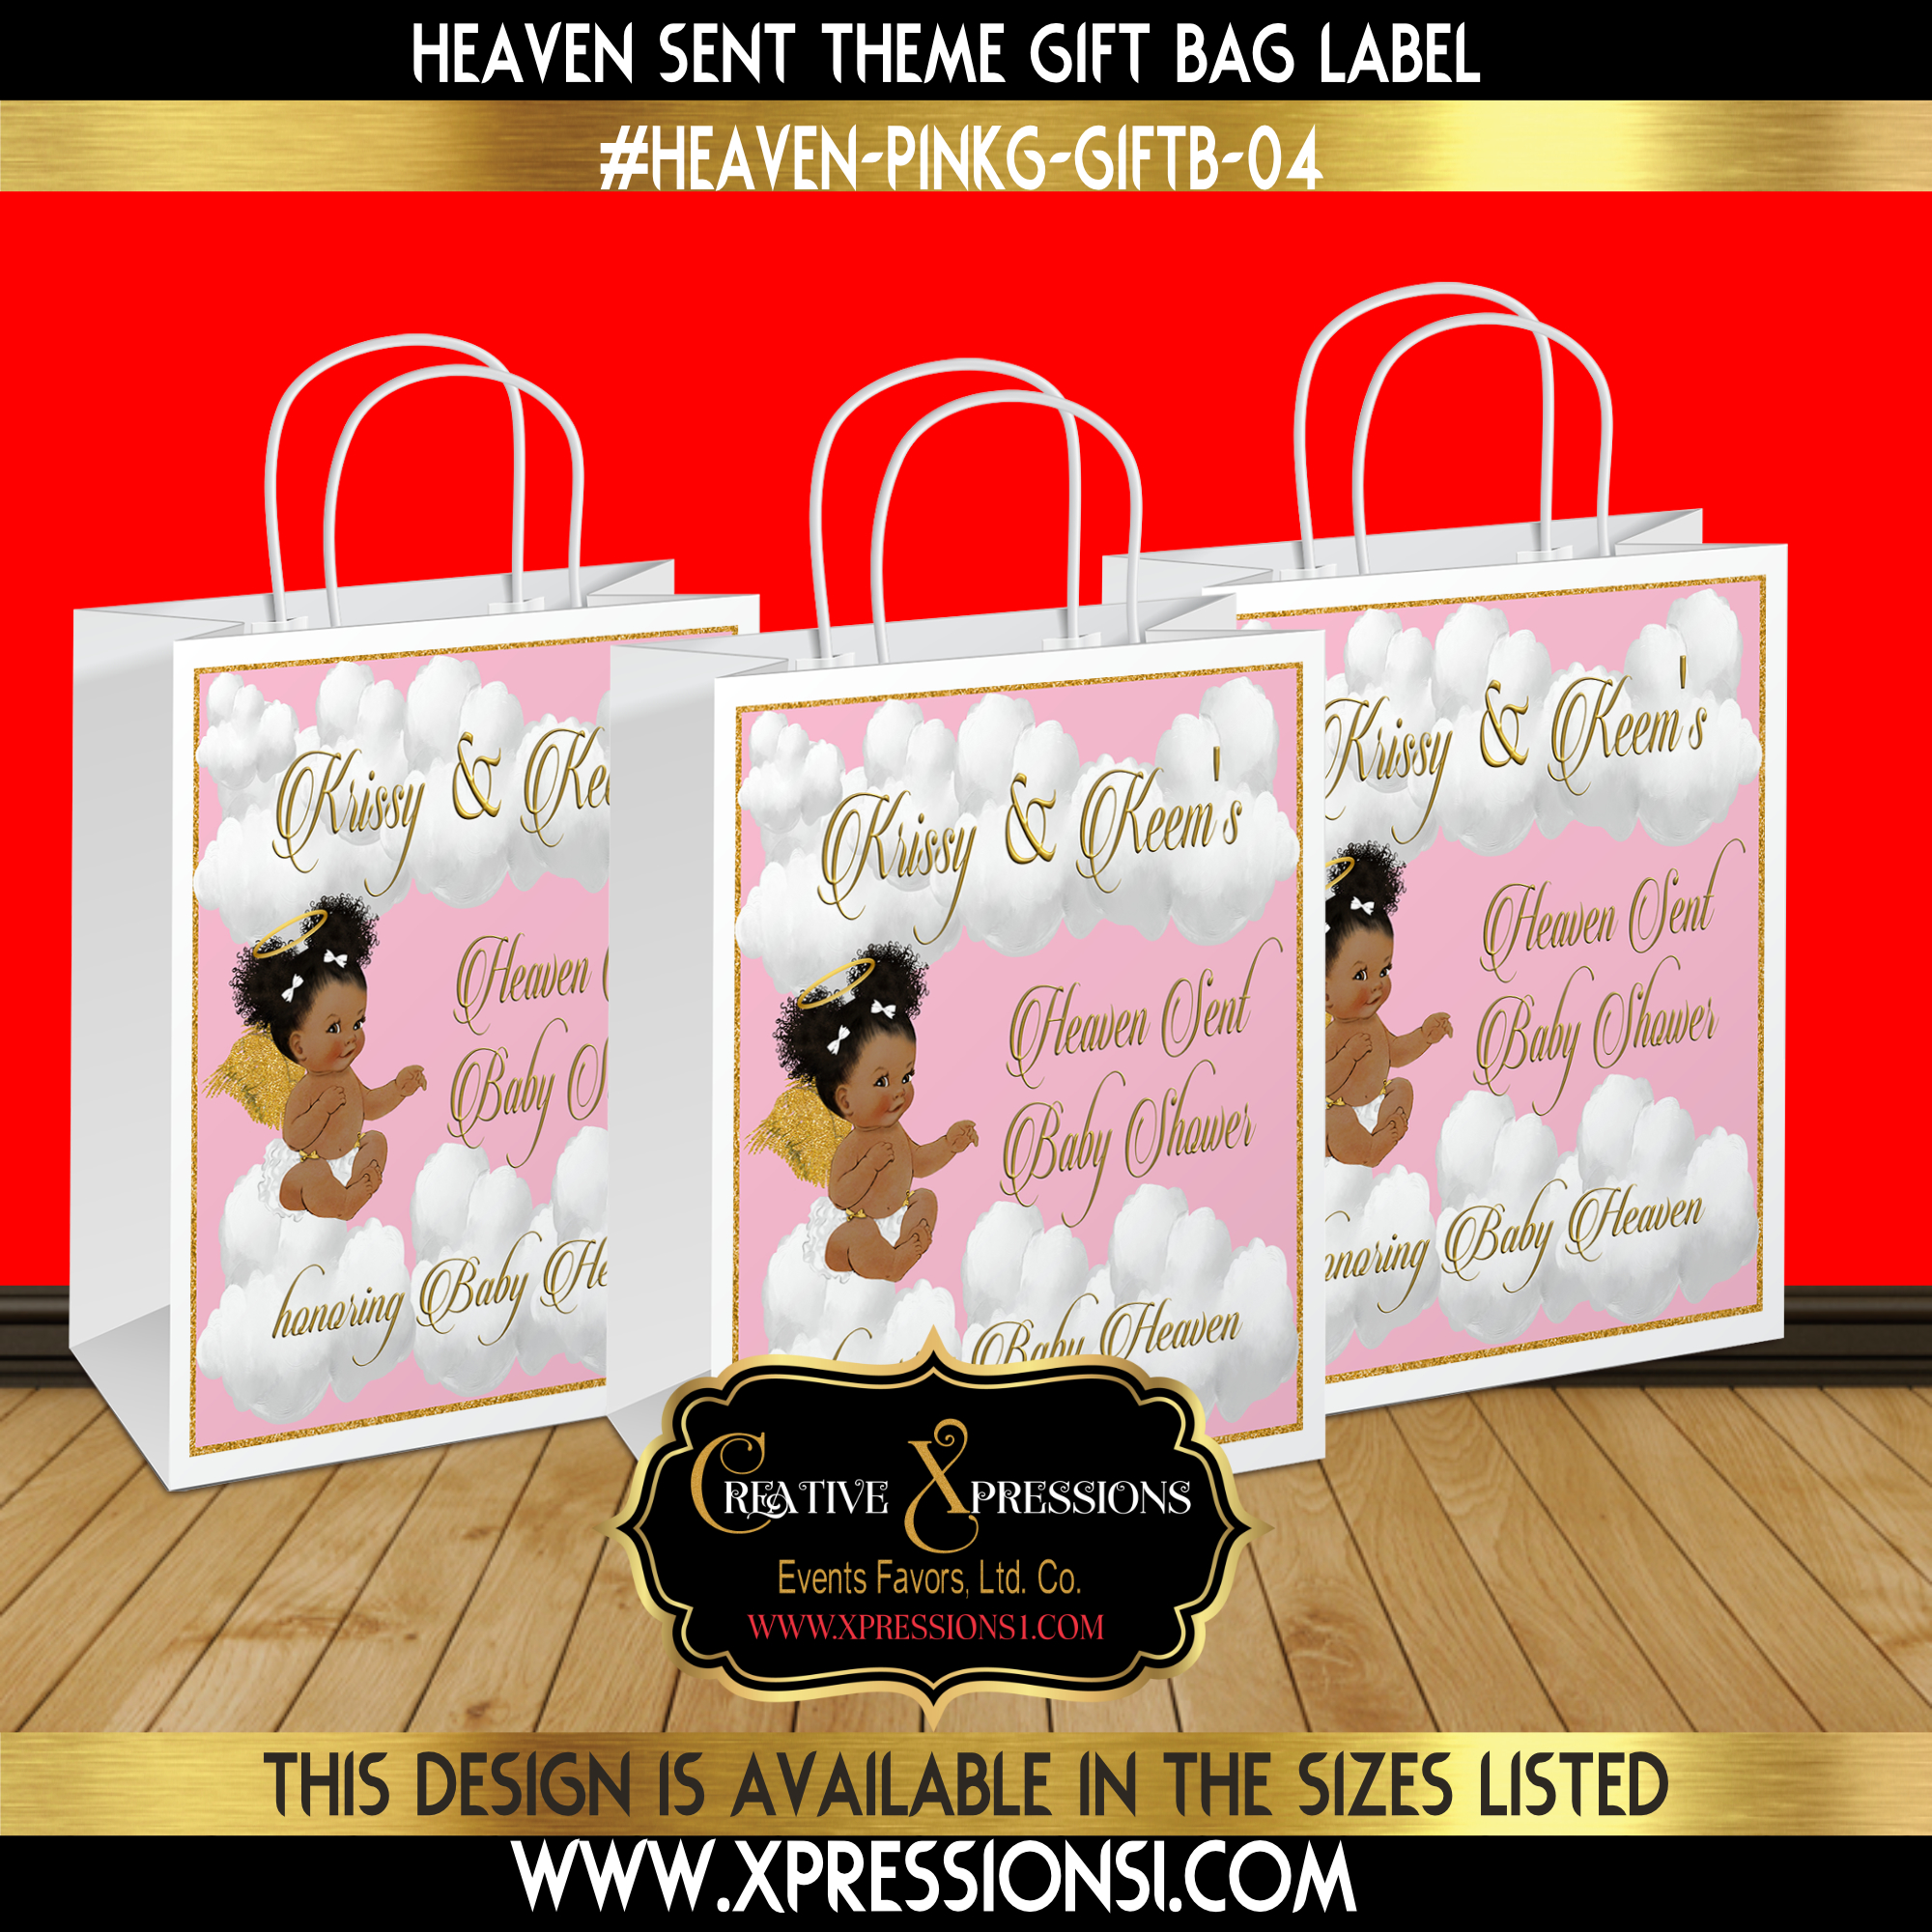 Pink and Glitter Gold Gift Bag